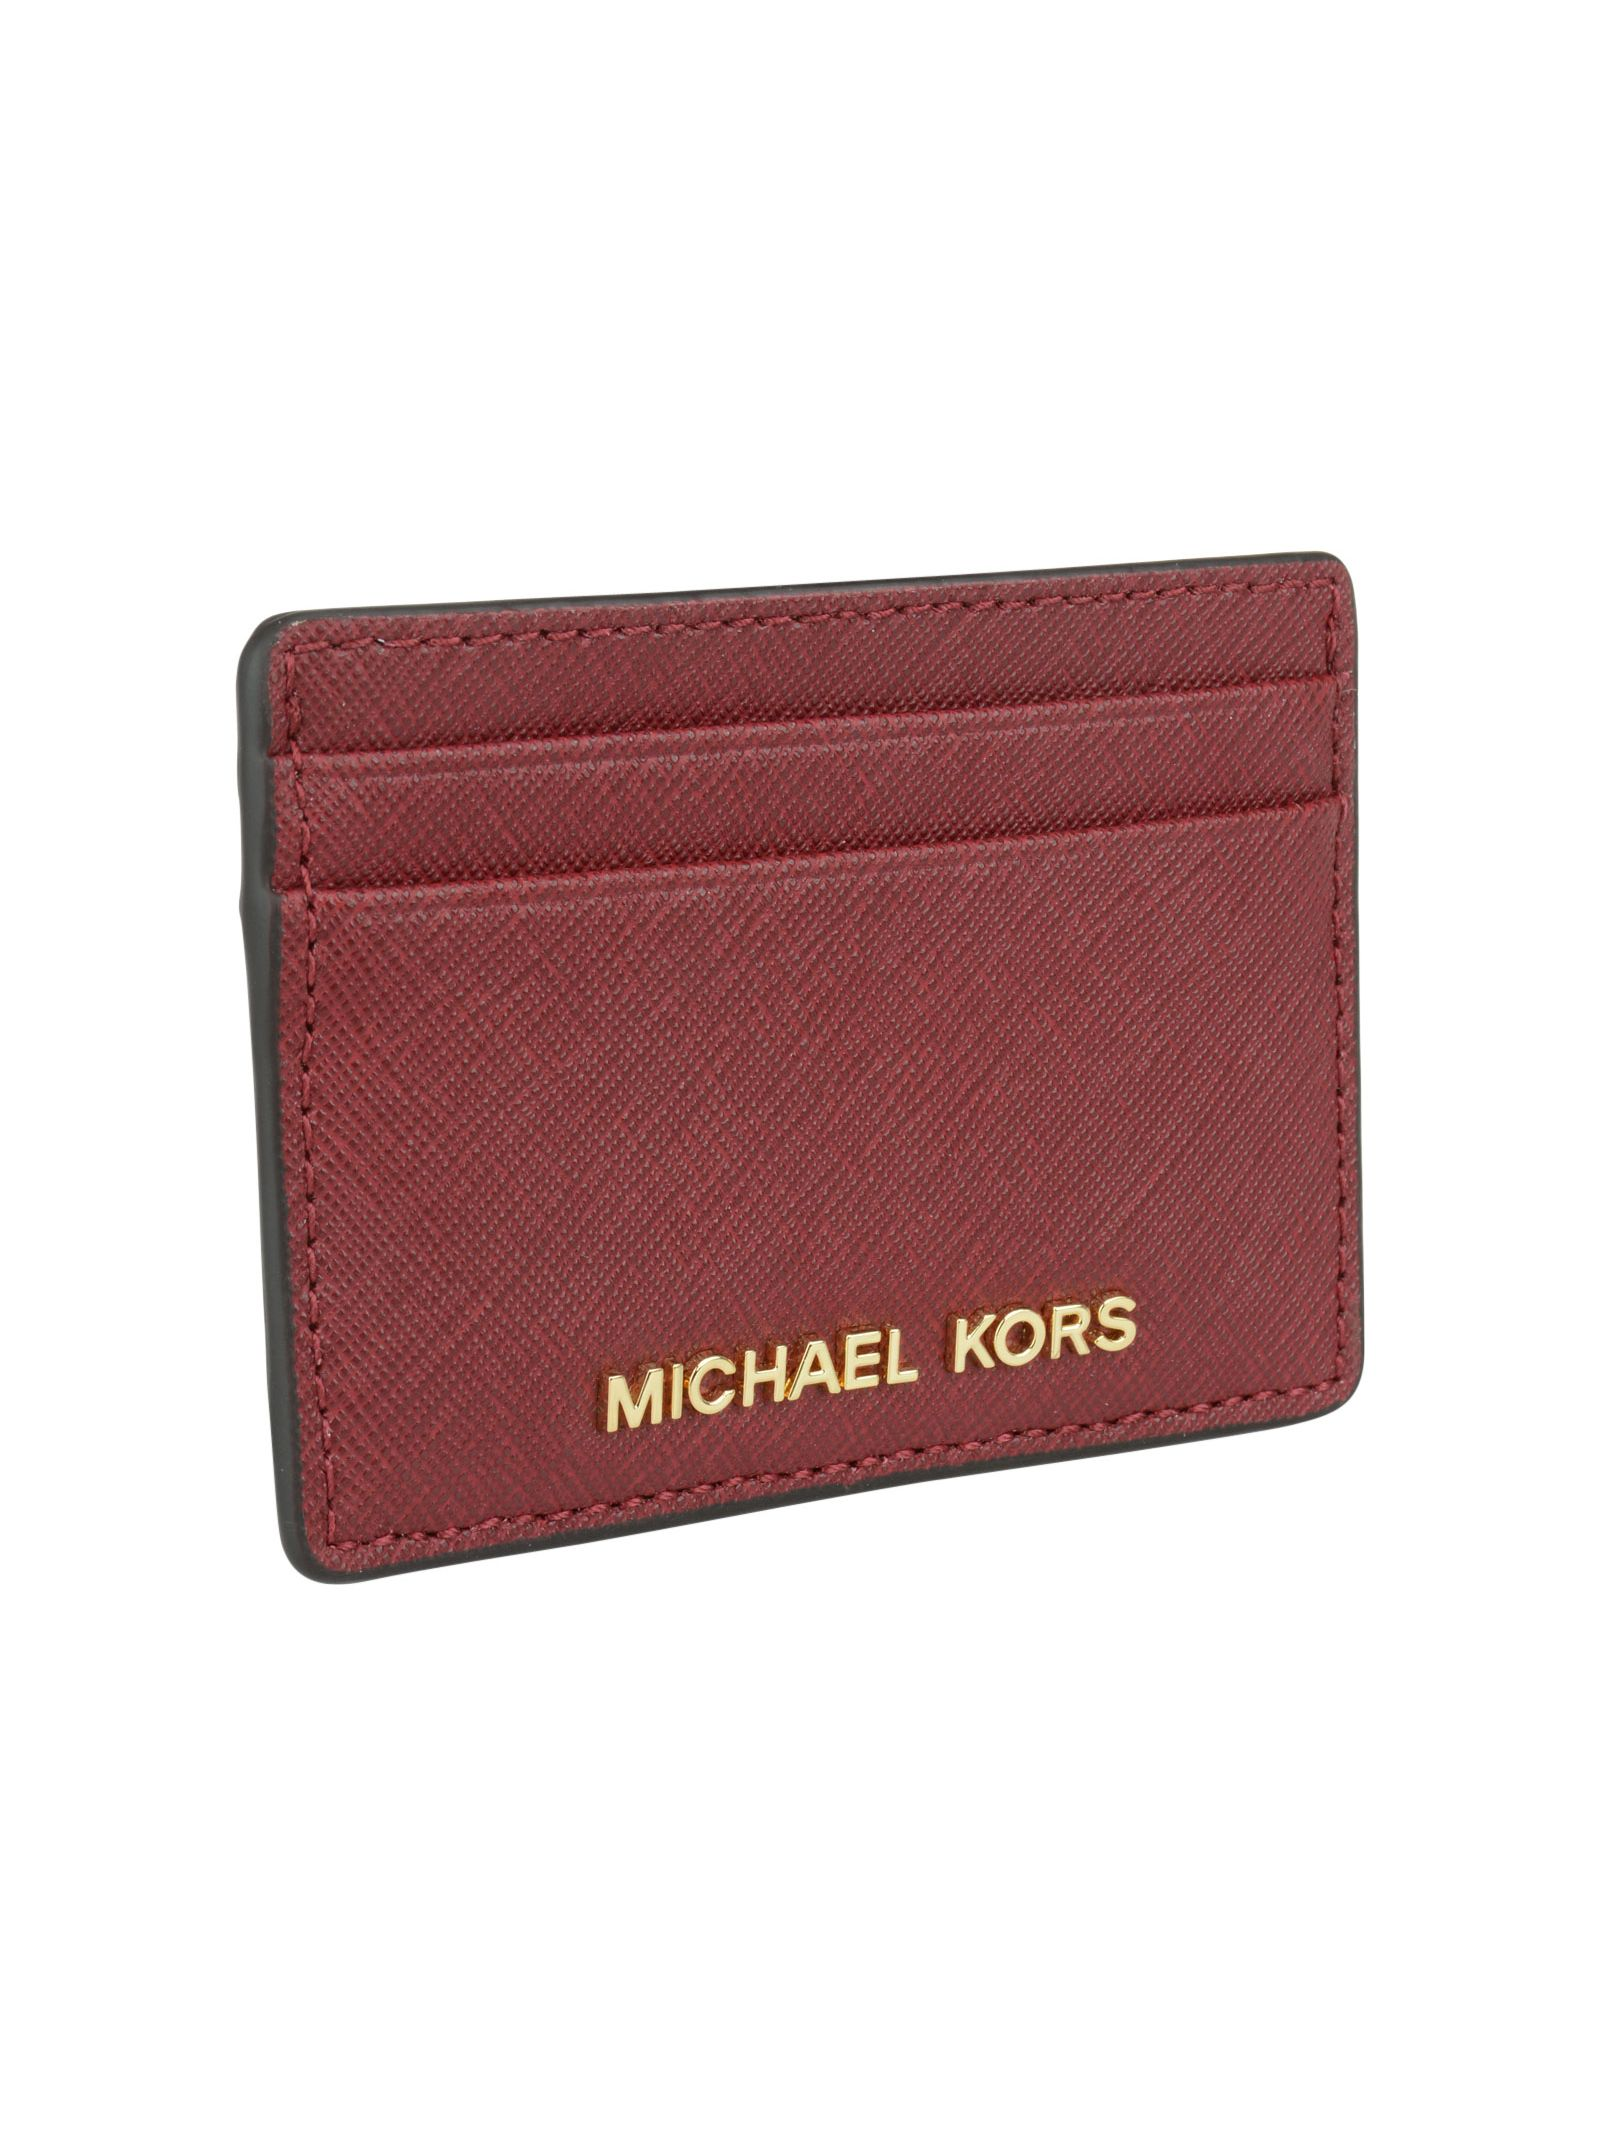 michael kors female michael kors cards case